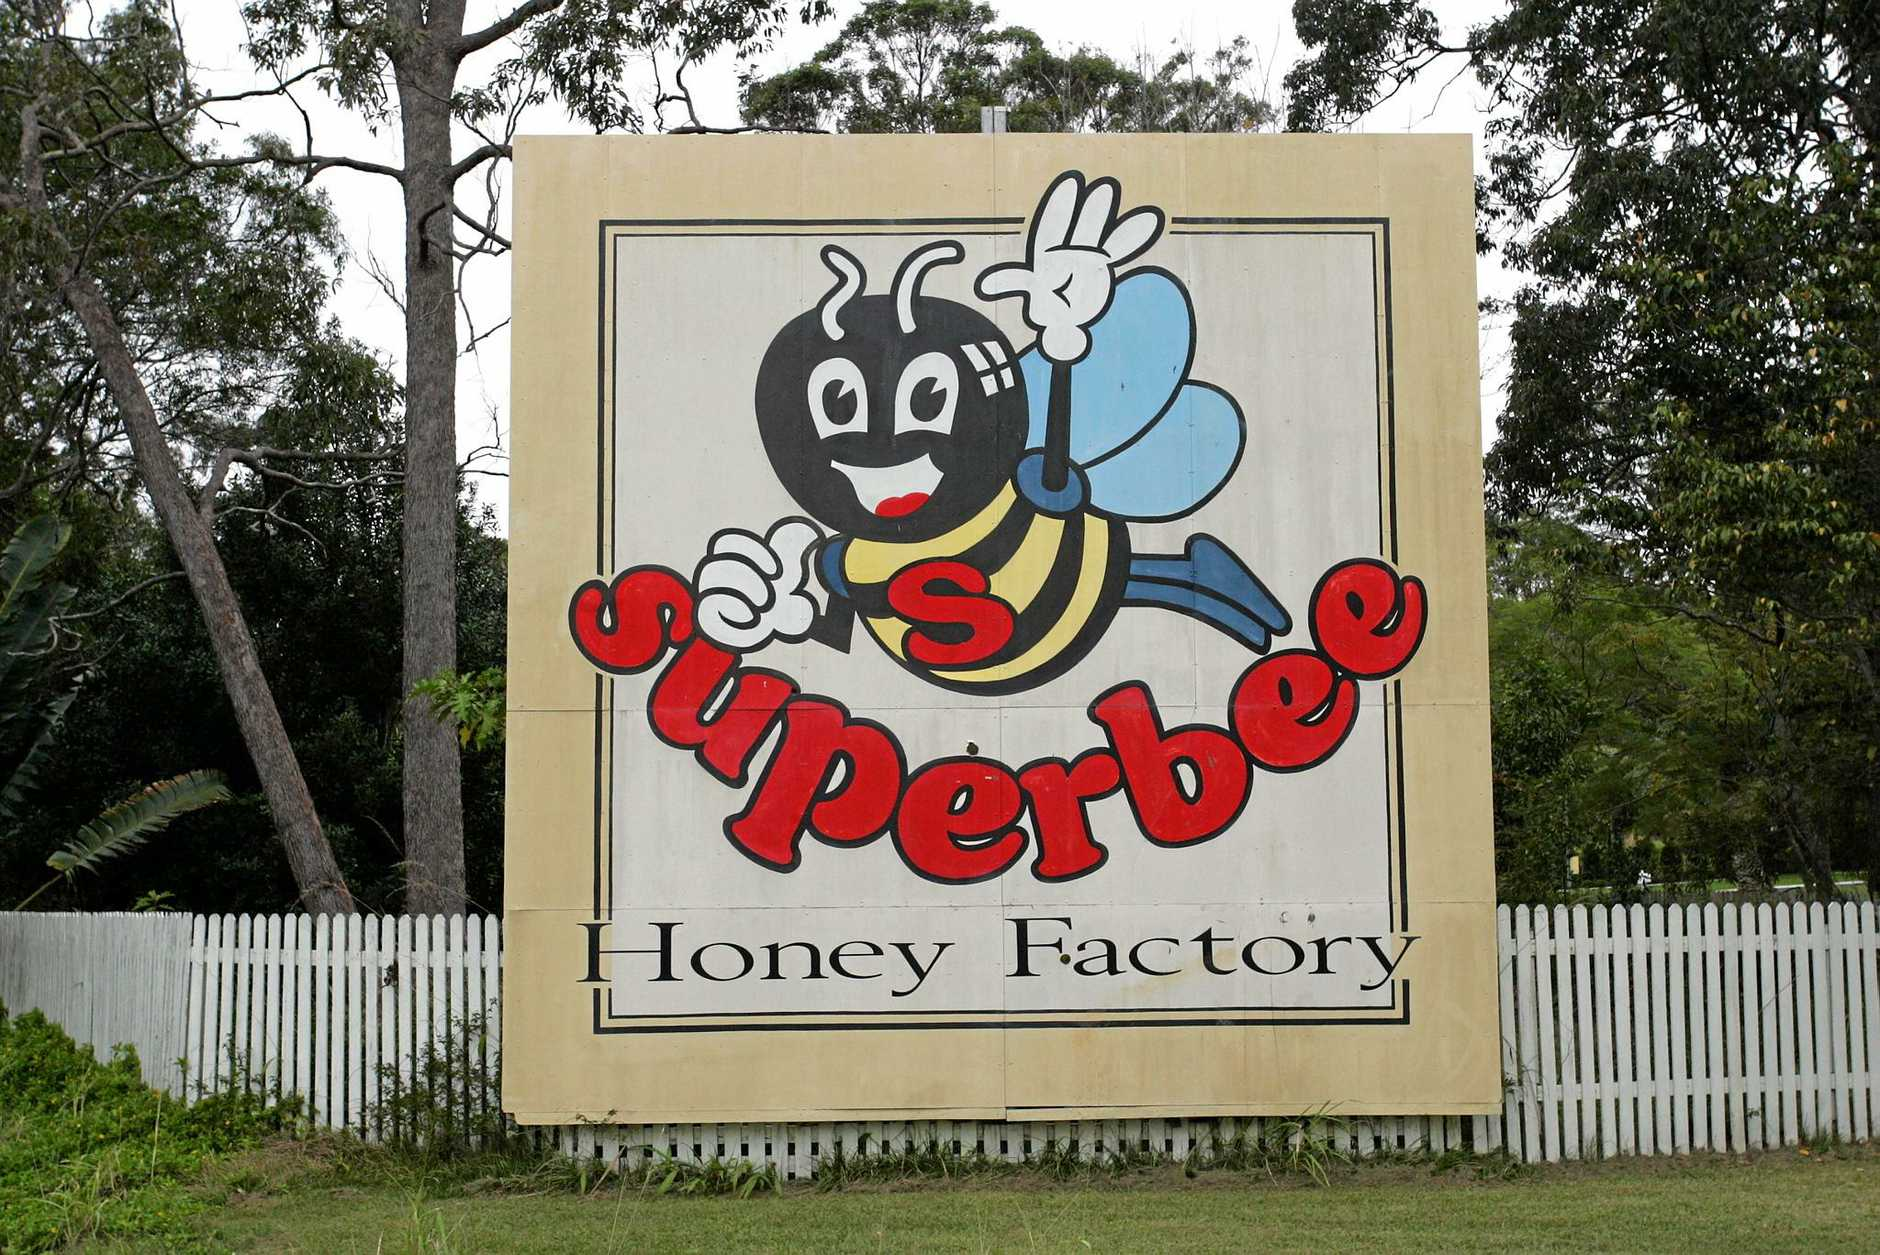 The Superbee closed down in 2007.